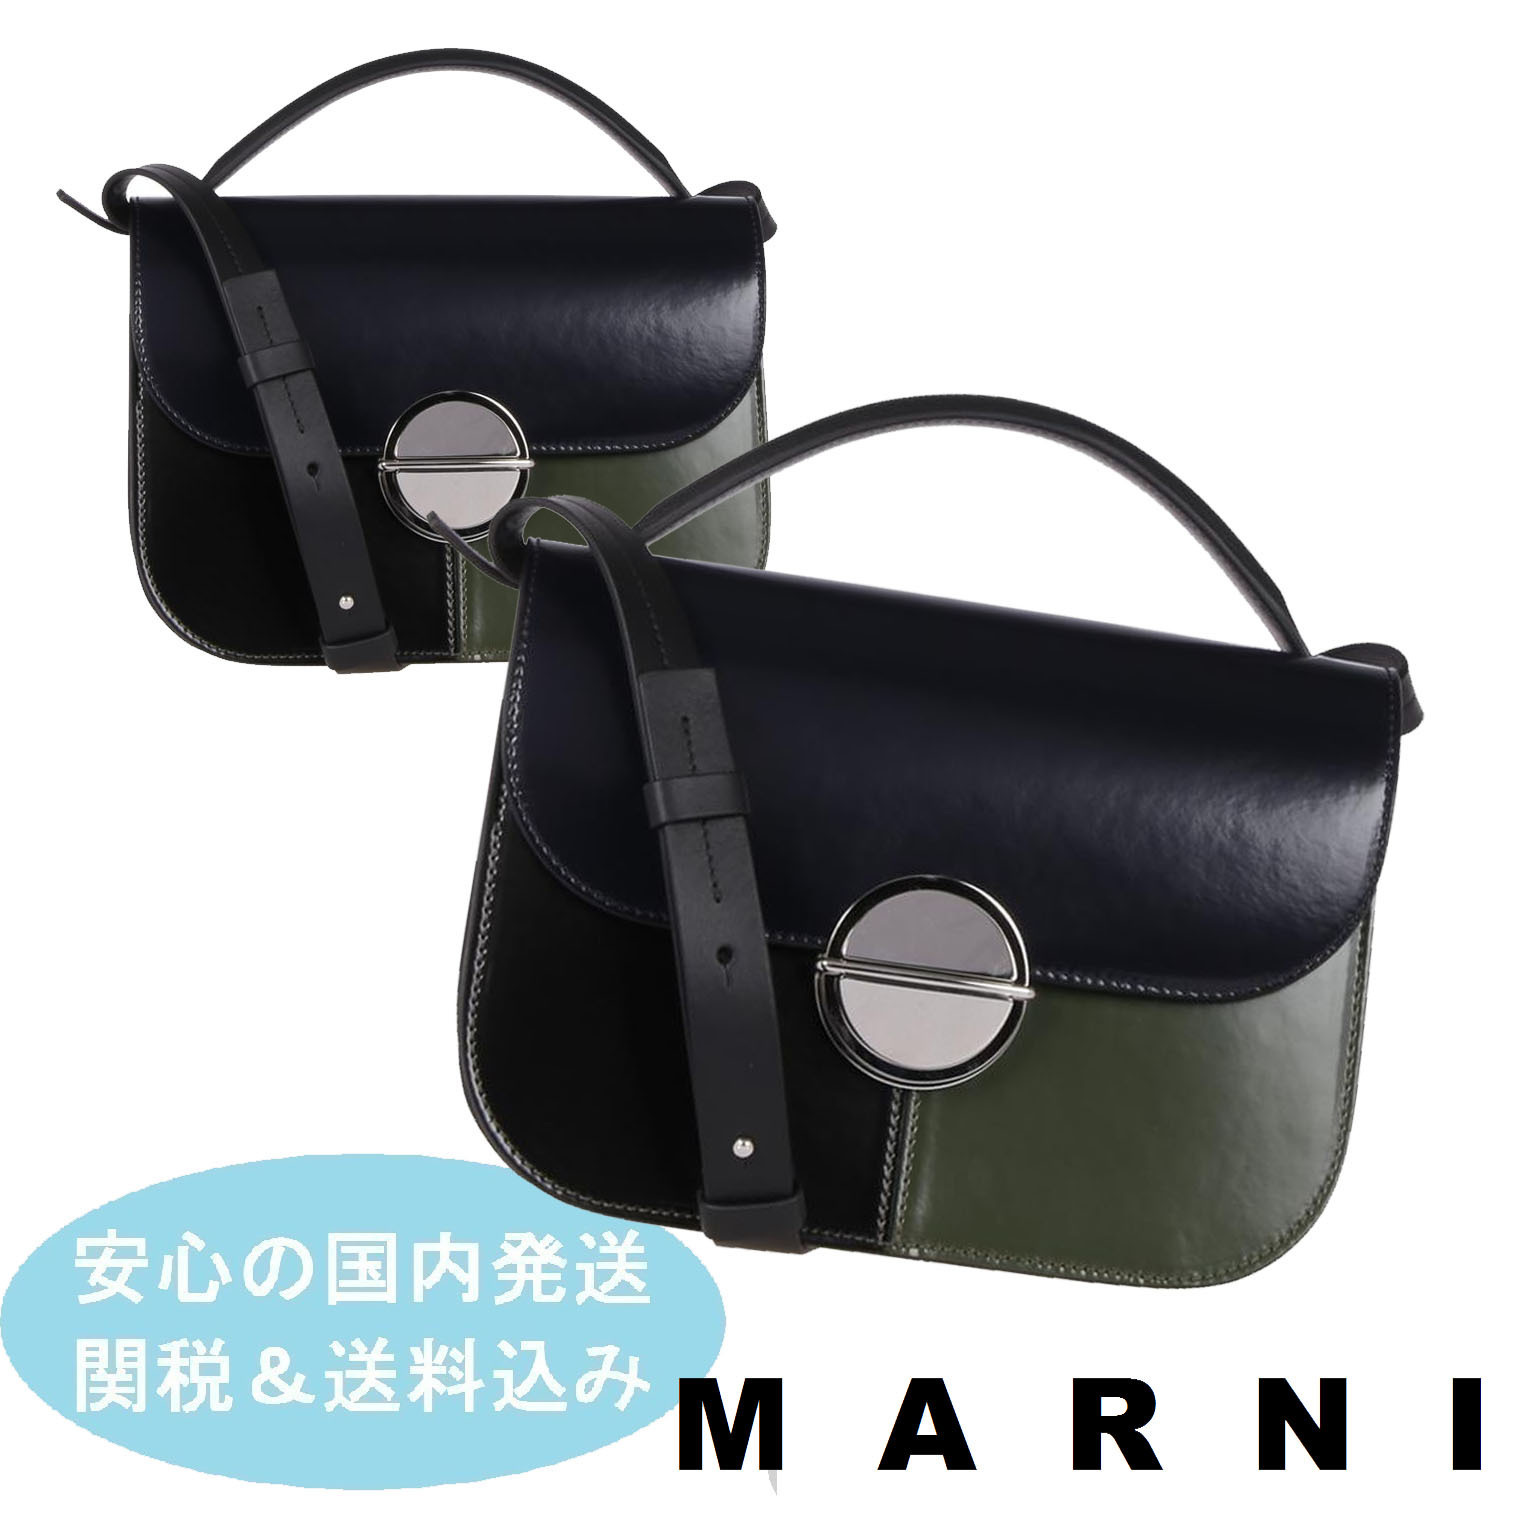 【送料関税込】MARNI★Tuk Bag in Tri-Color Leather★国内発送